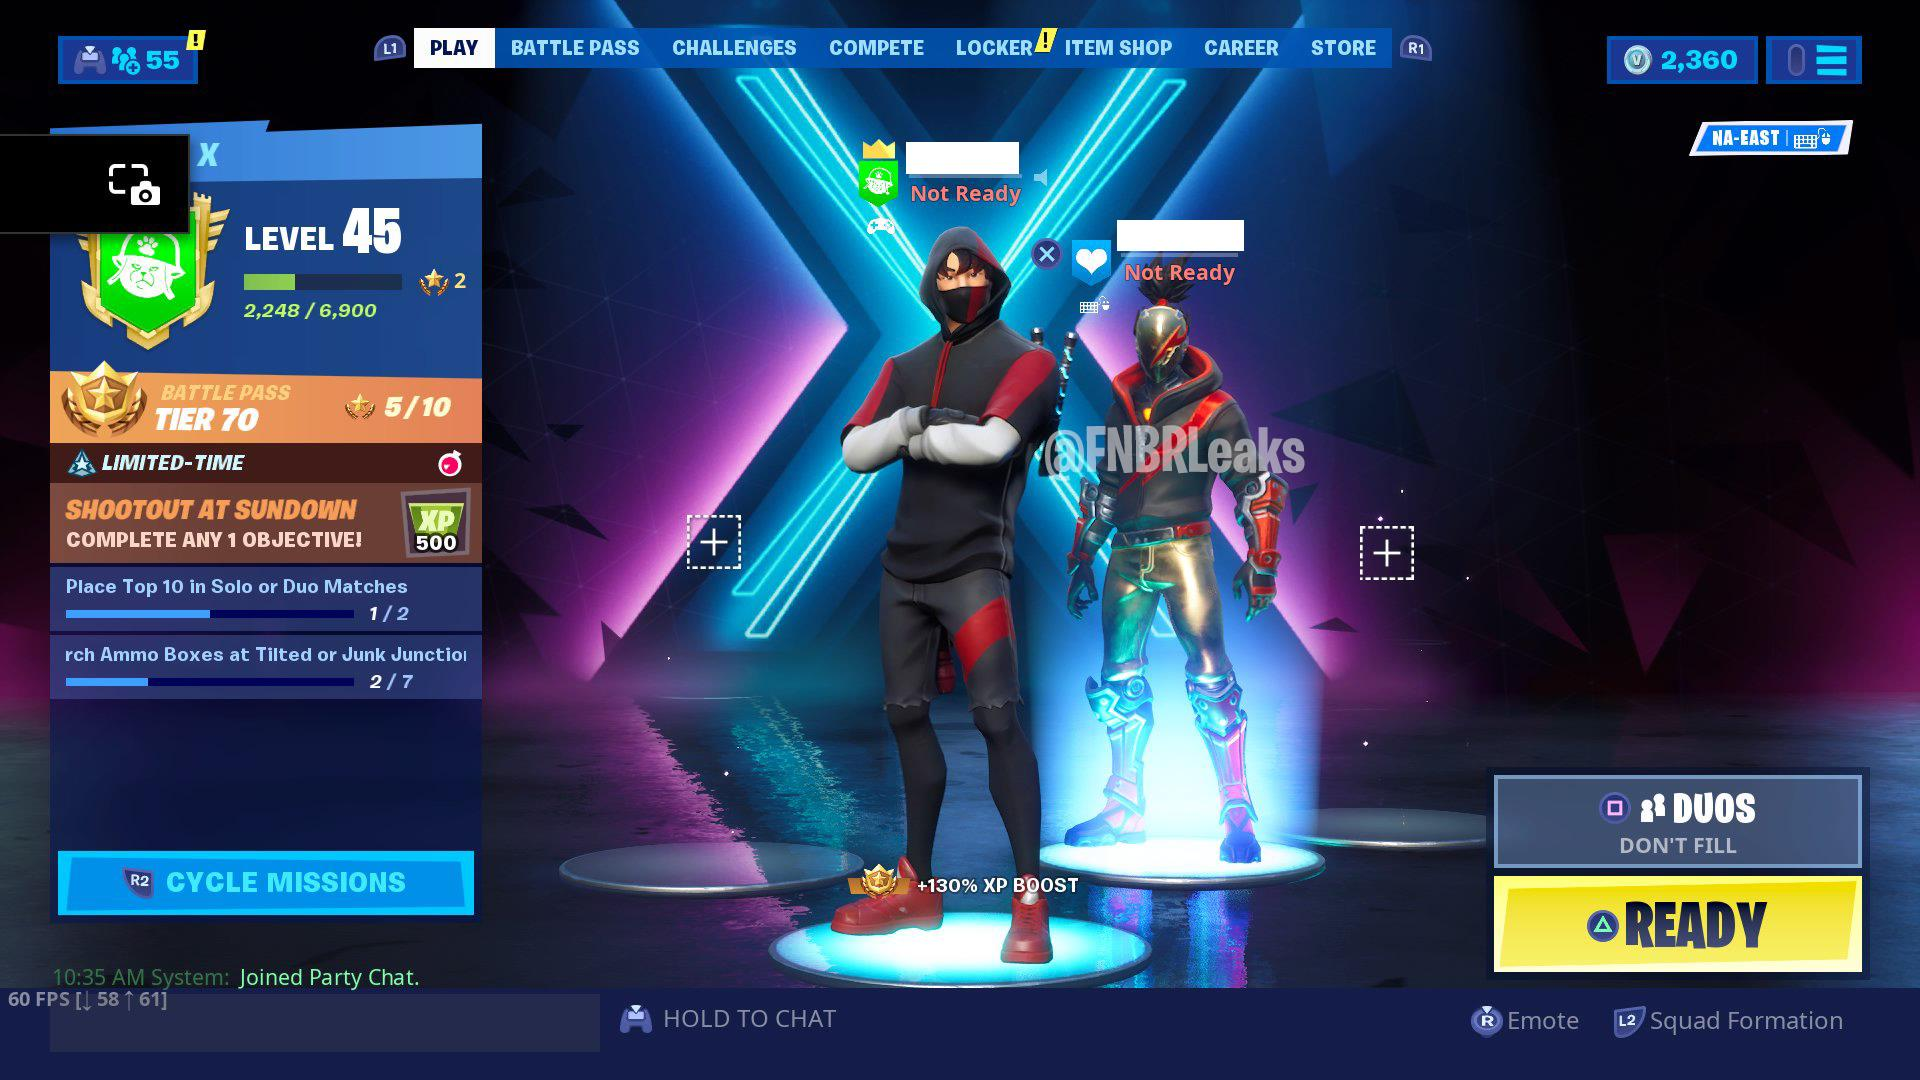 The New Fortnite Season X Starter Pack has Leaked! – Pro Game Guides